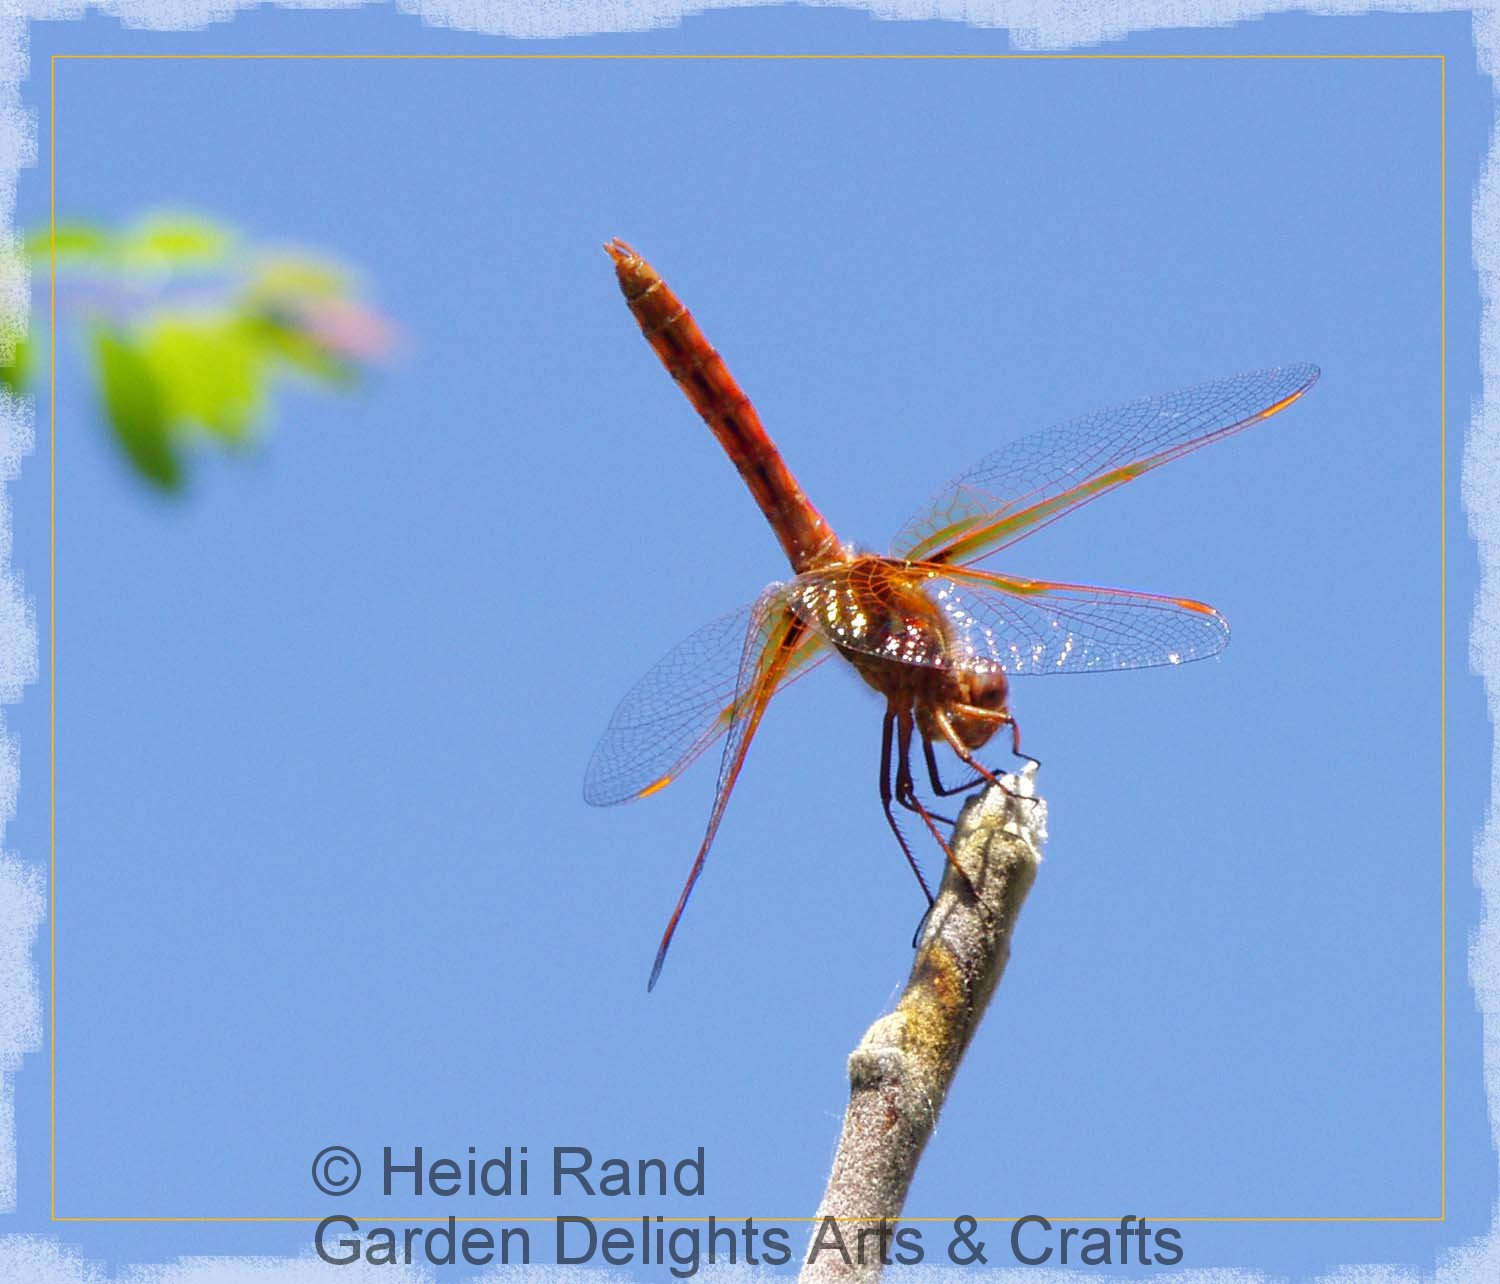 Scarlet darter dragonfly against sky